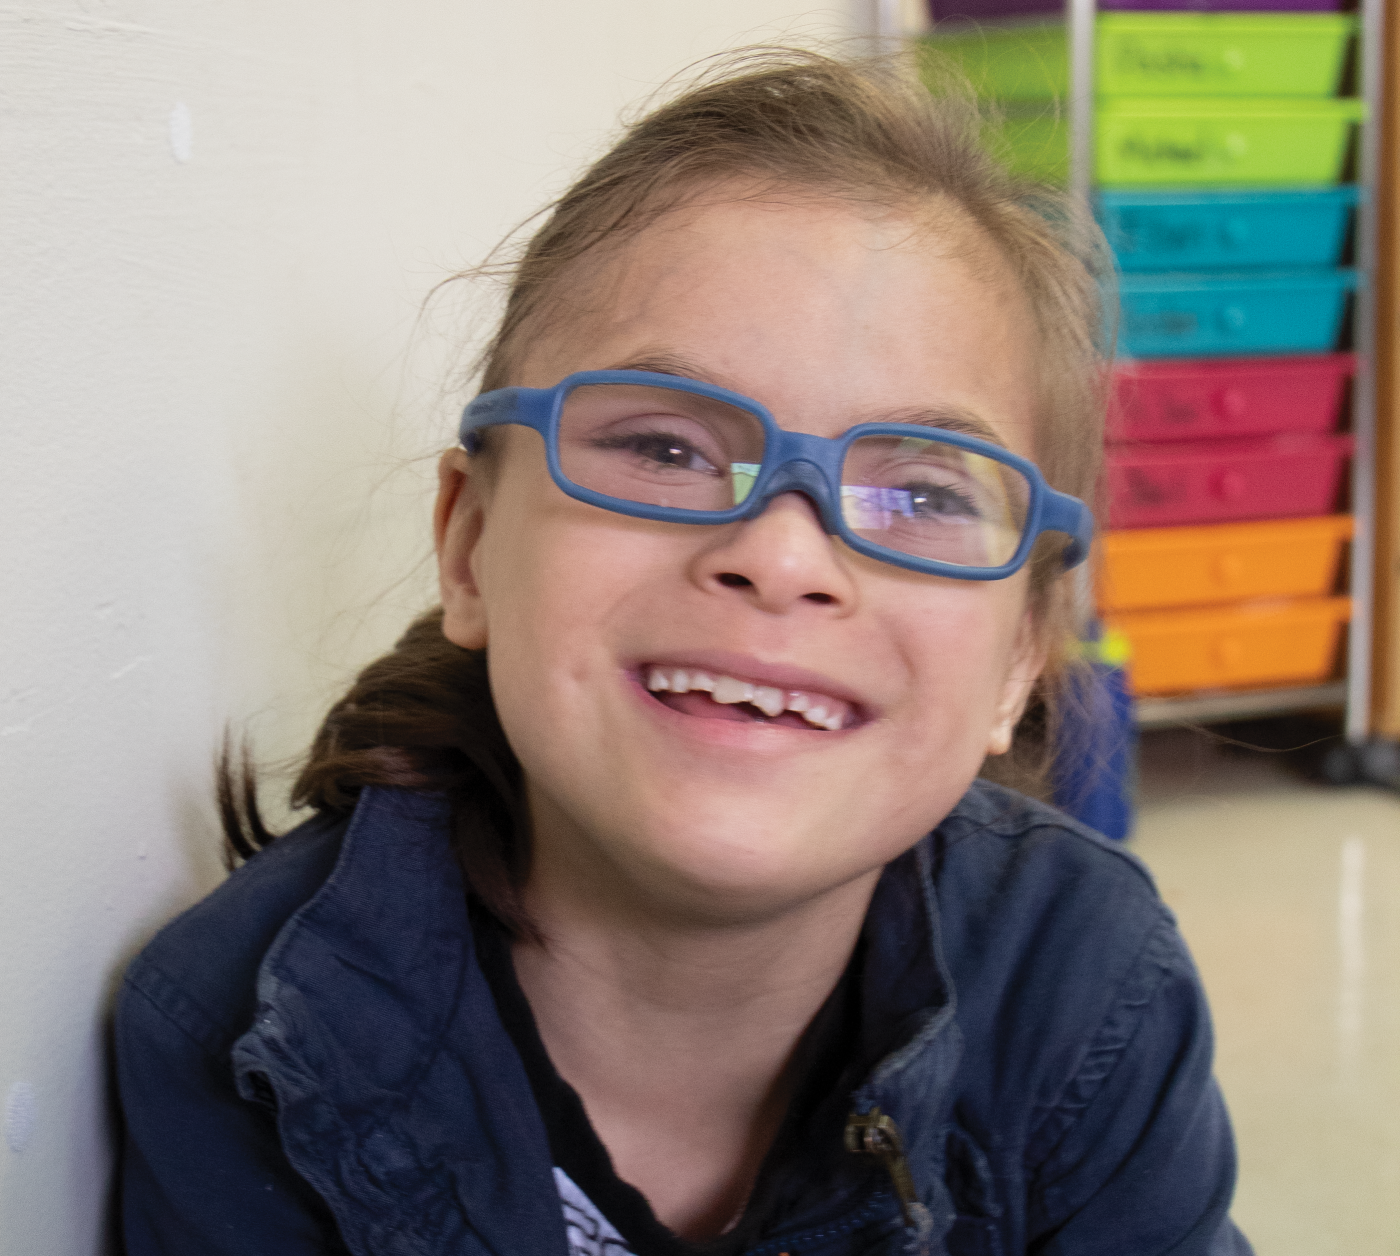 A young girl with glasses smiling at the camera.